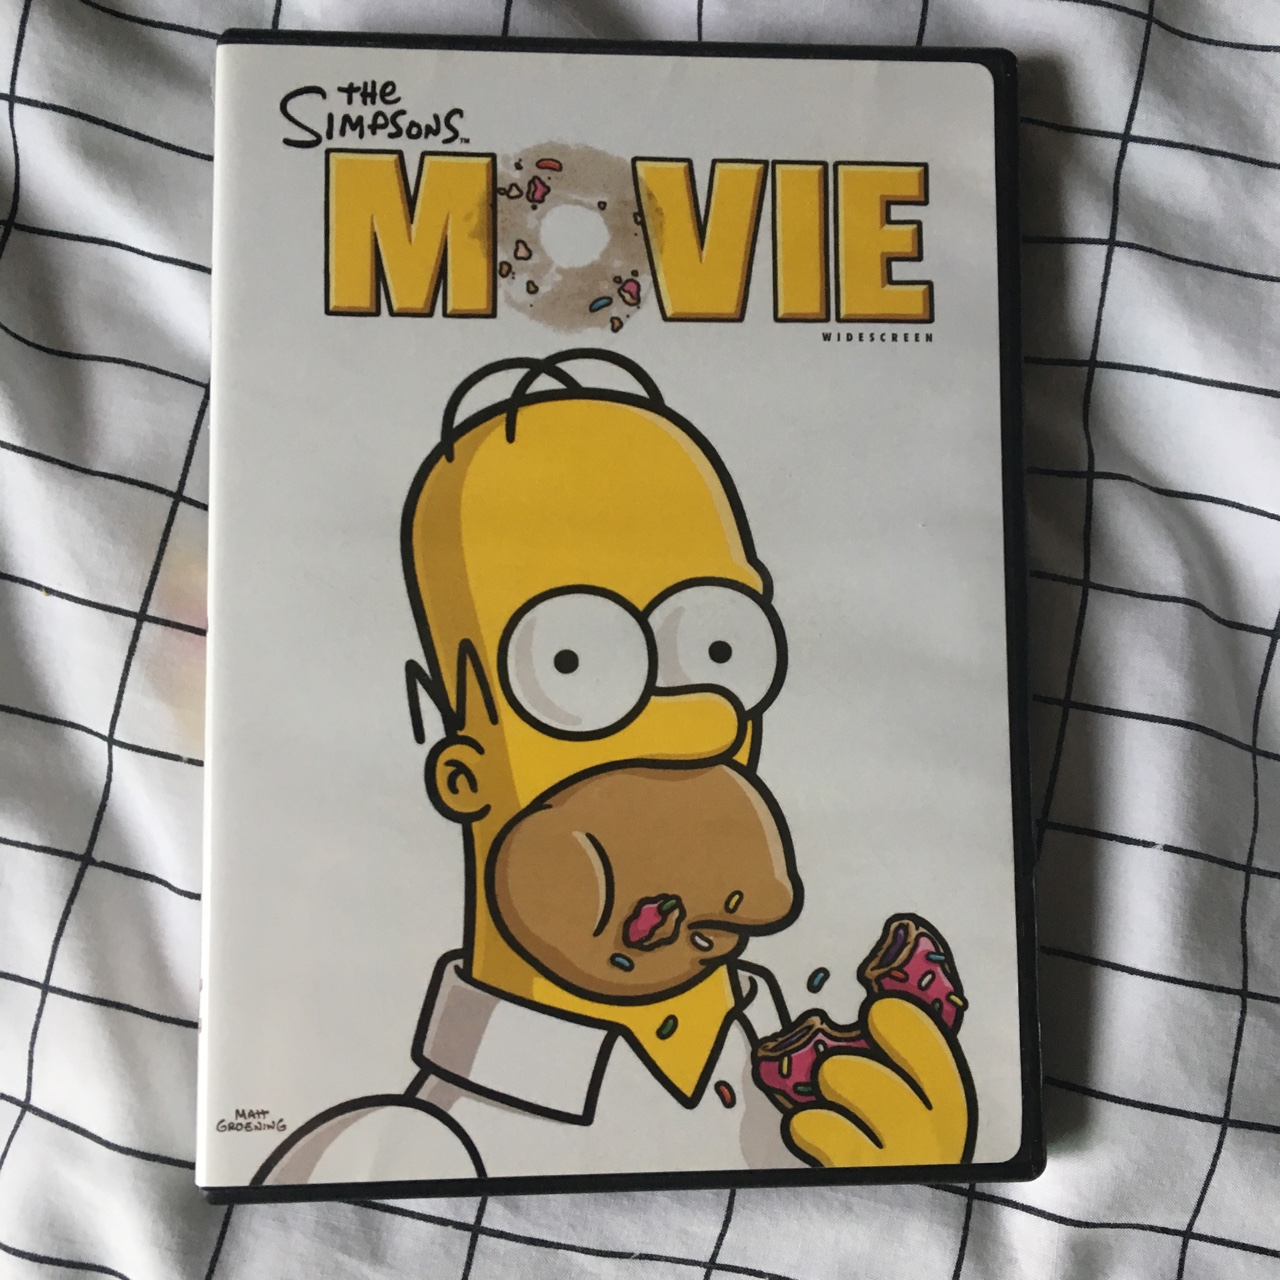 The Simpsons Movie Dvd 2007 Free Shipping Depop